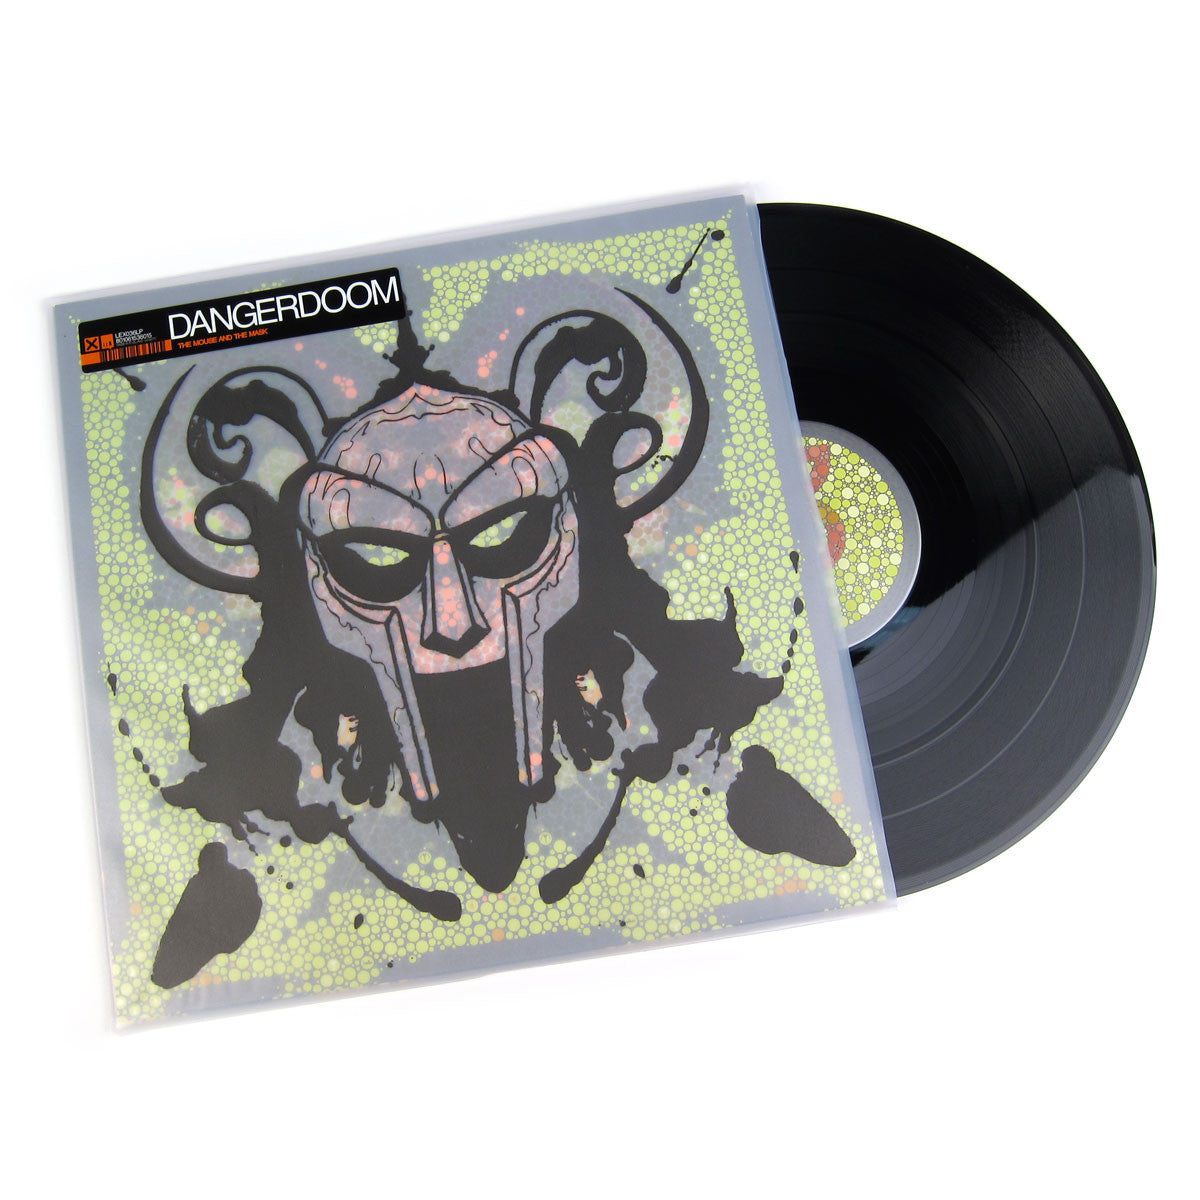 Dangerdoom: Mouse & The Mask (MF Doom, Dangermouse) Vinyl 2LP